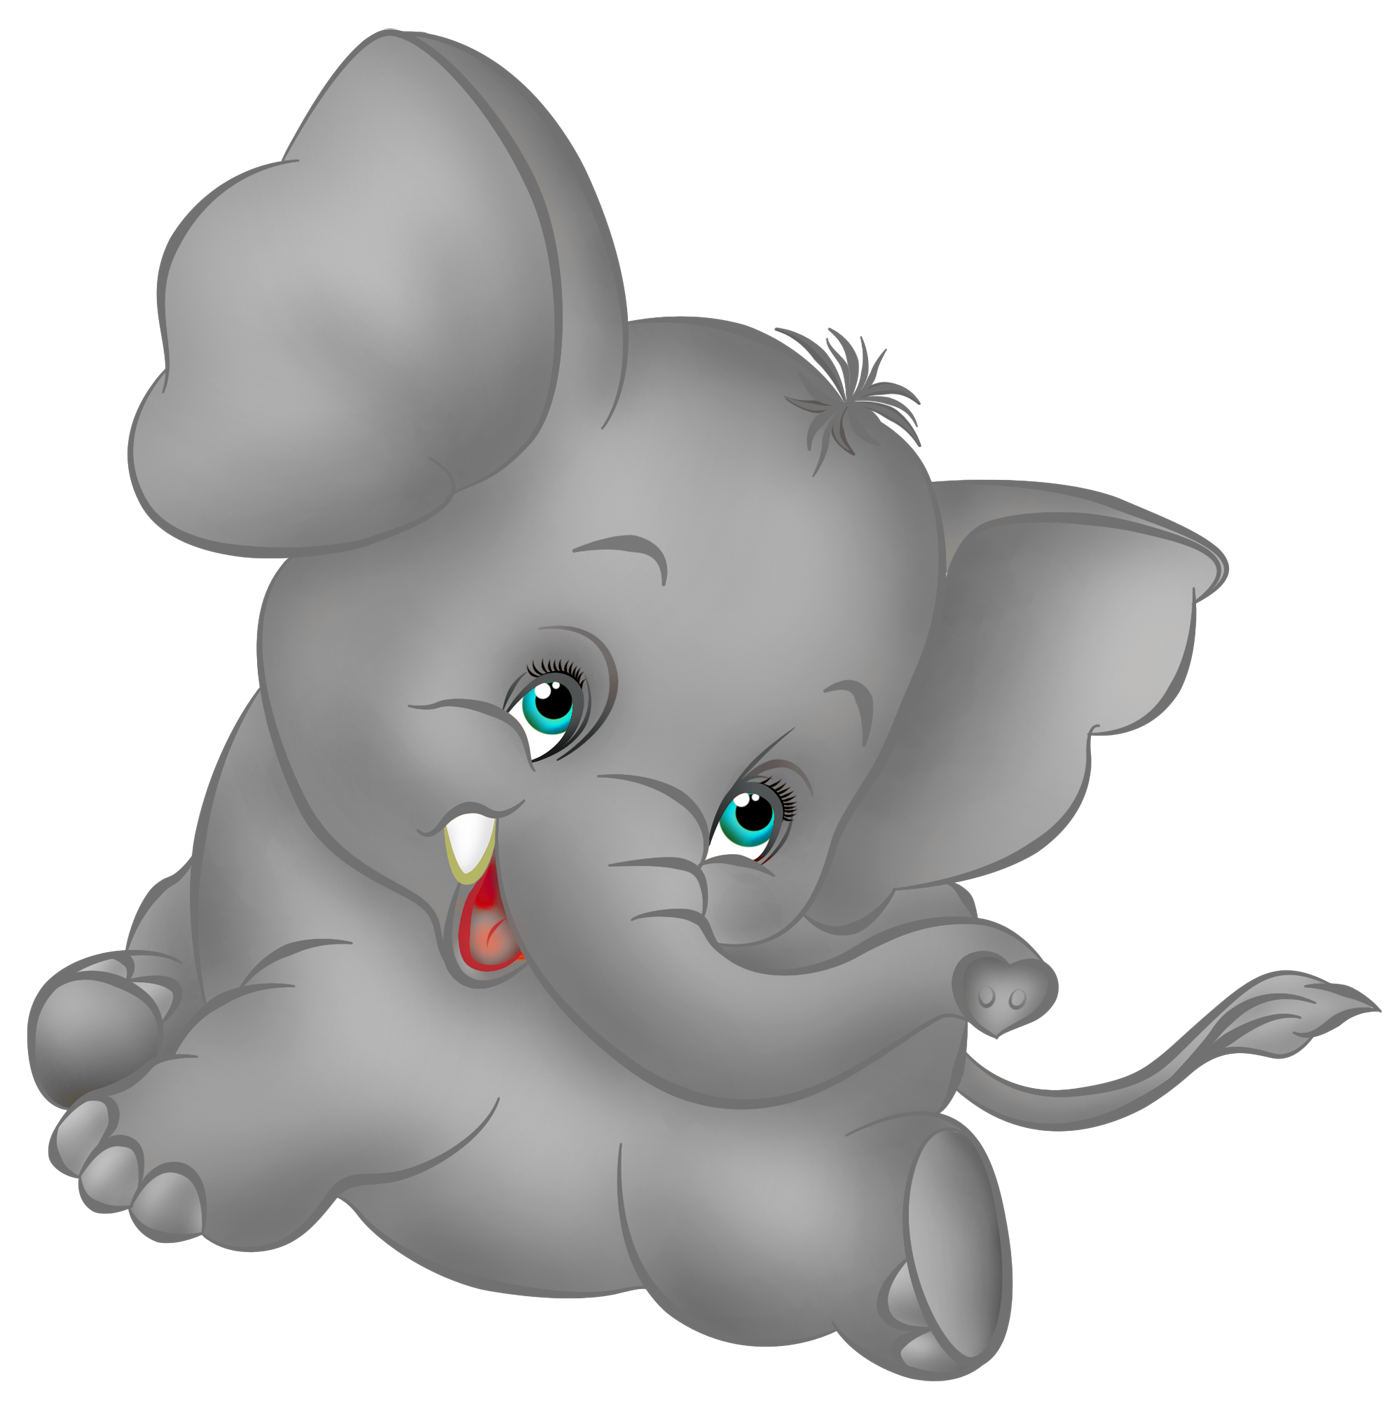 Stamp clipart animated. Grey elephant cartoon free